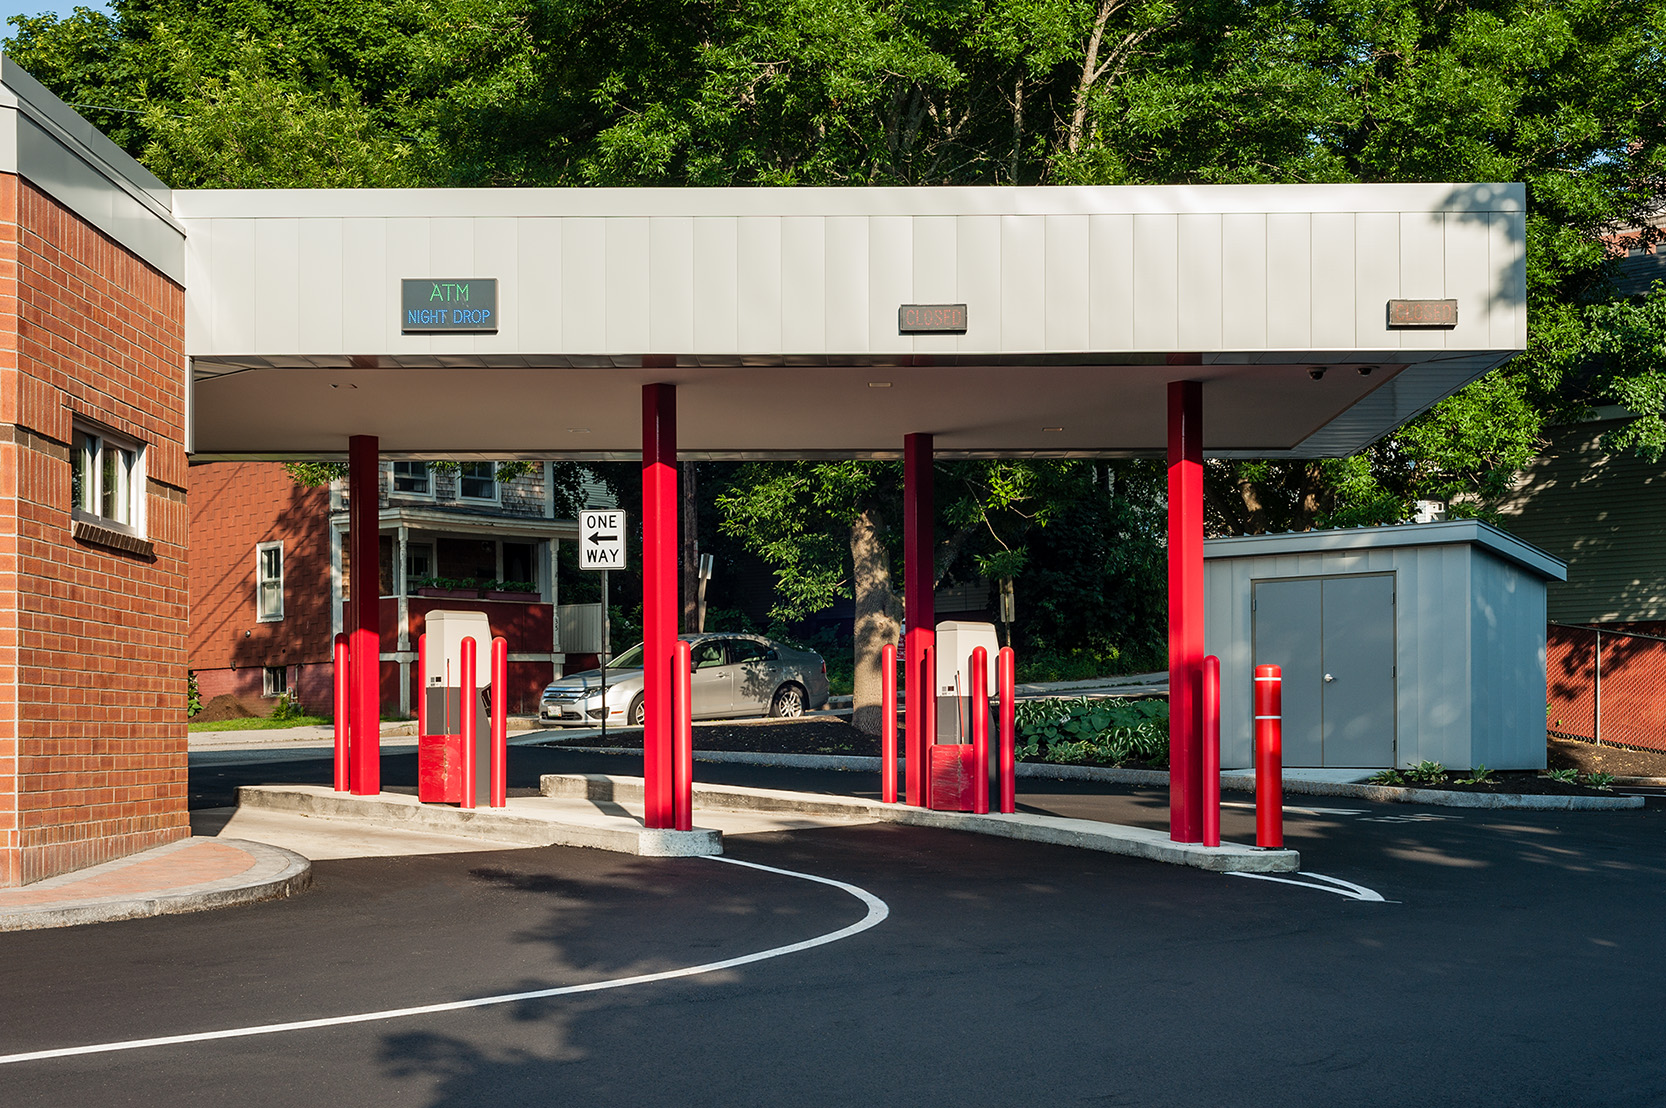 The drivethrough is tucked behind the building but is easy to navigate with its bright red columns.